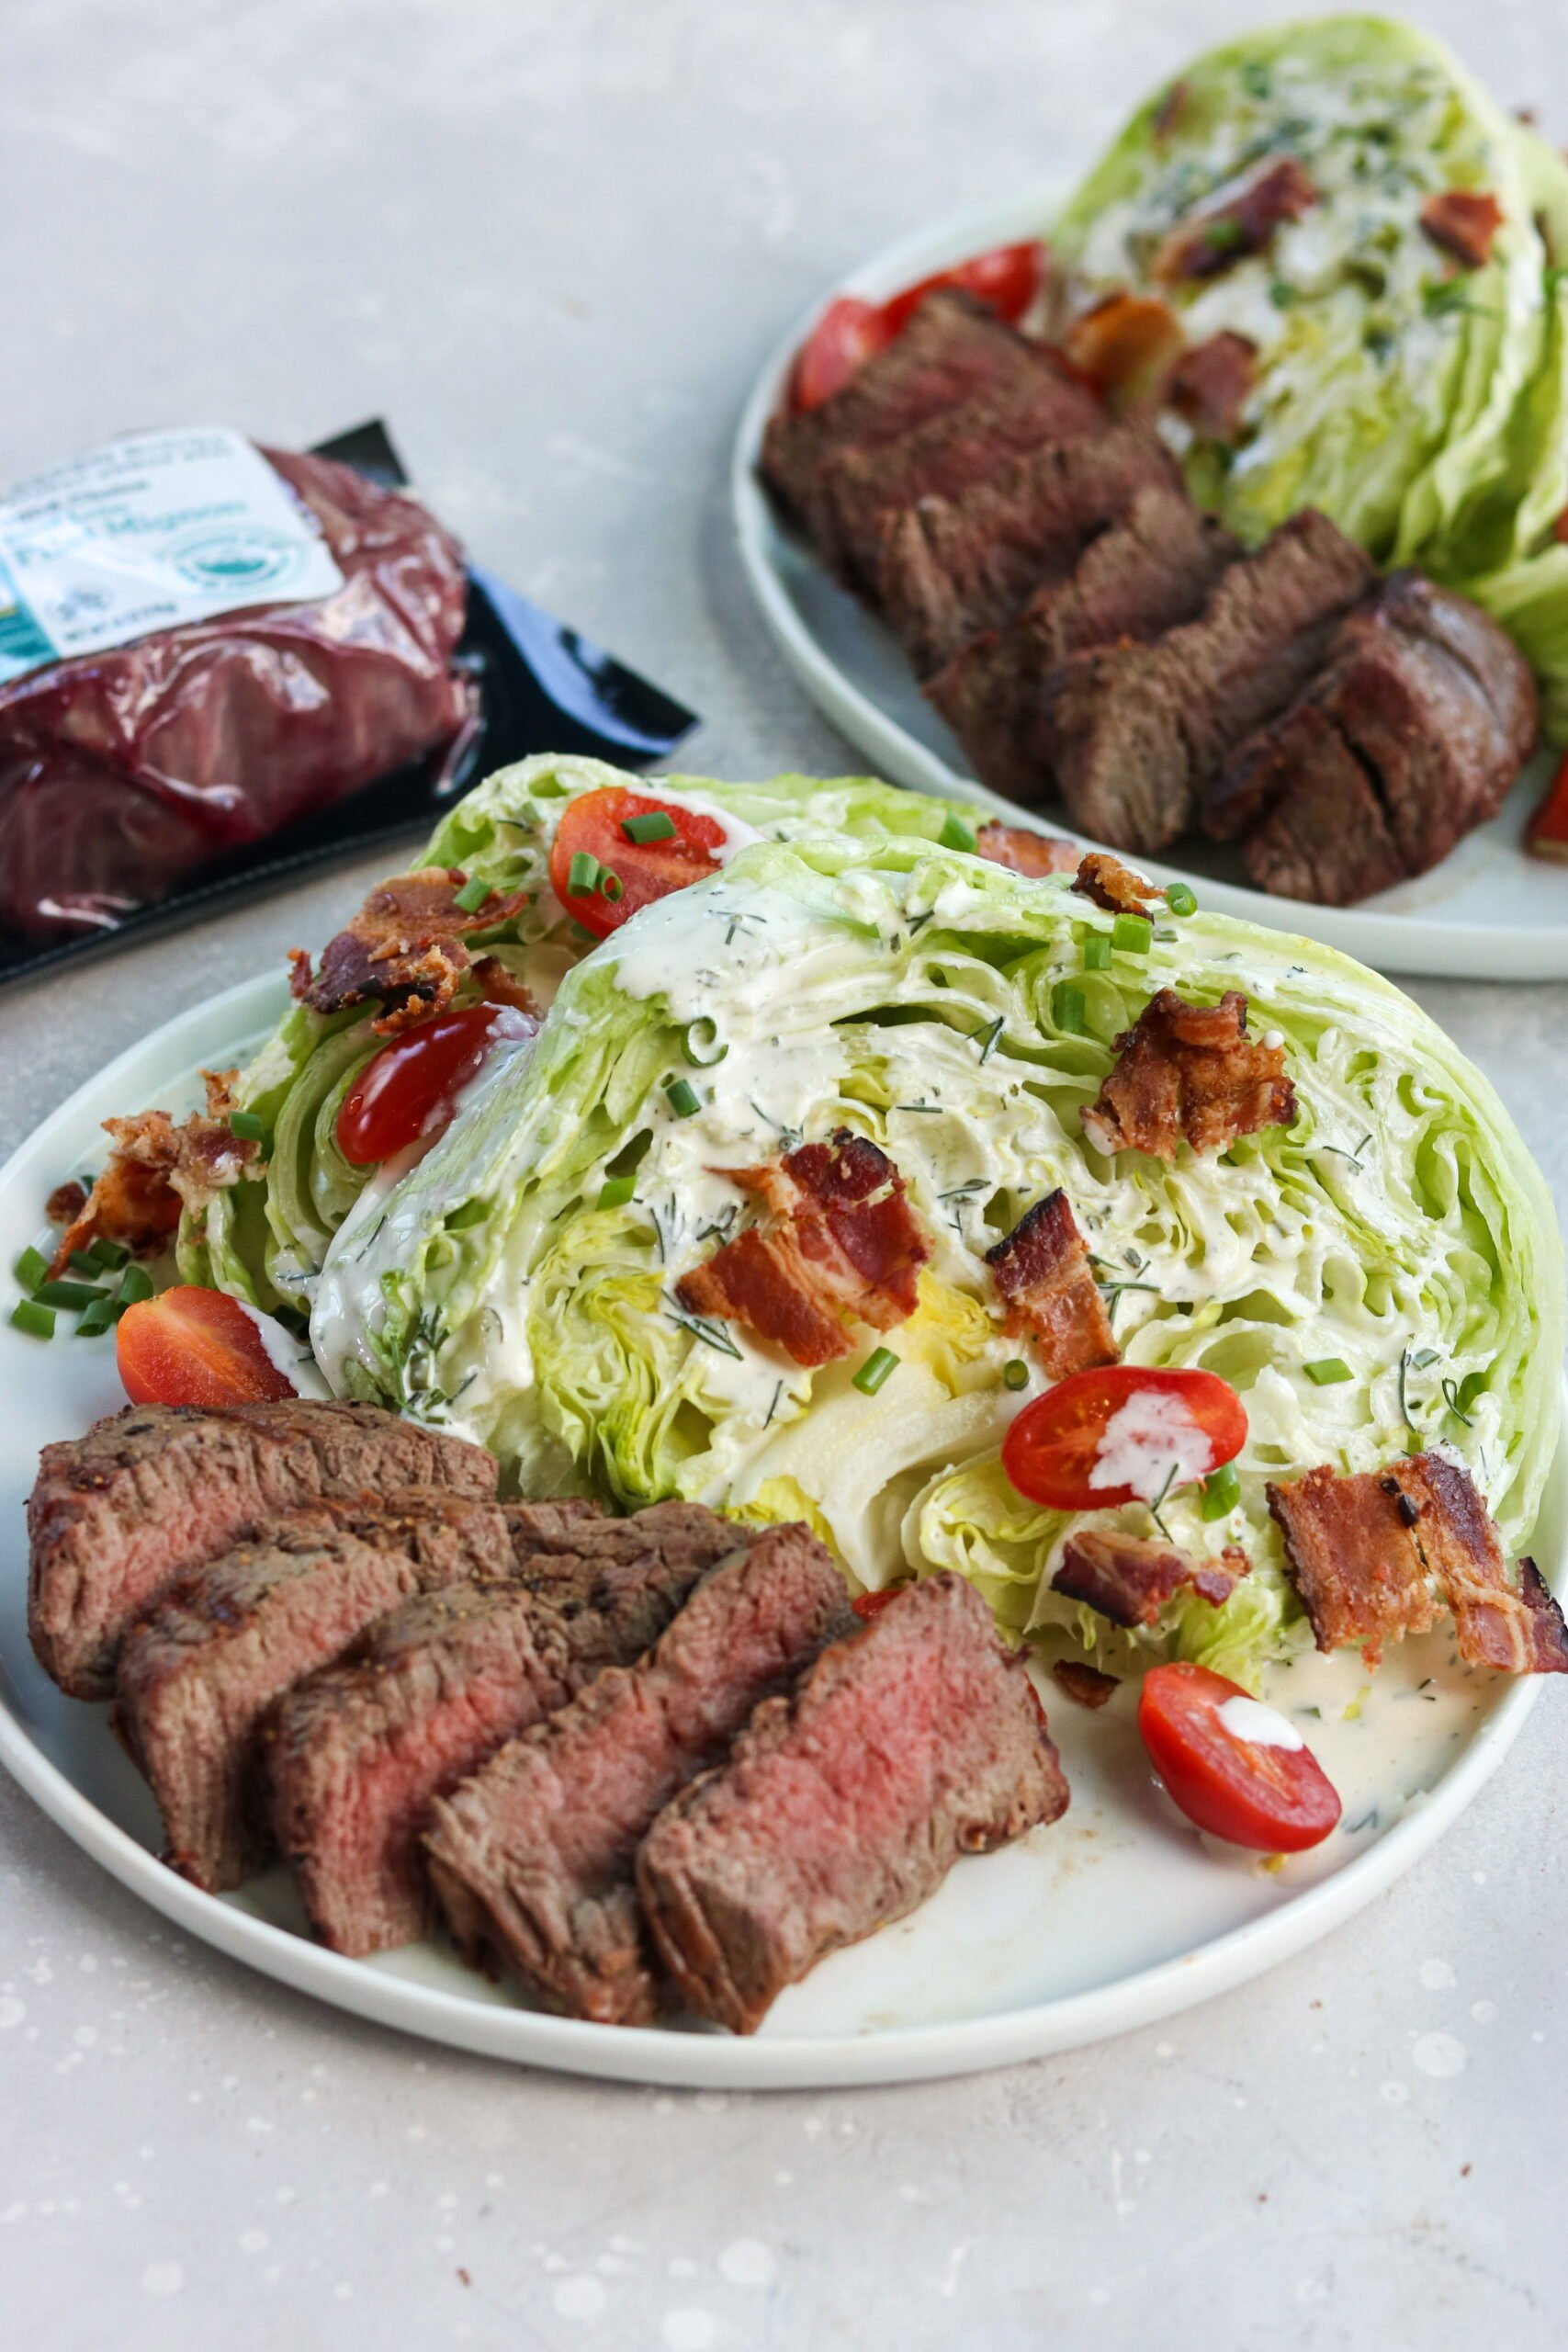 gluten free wedge salad with filet